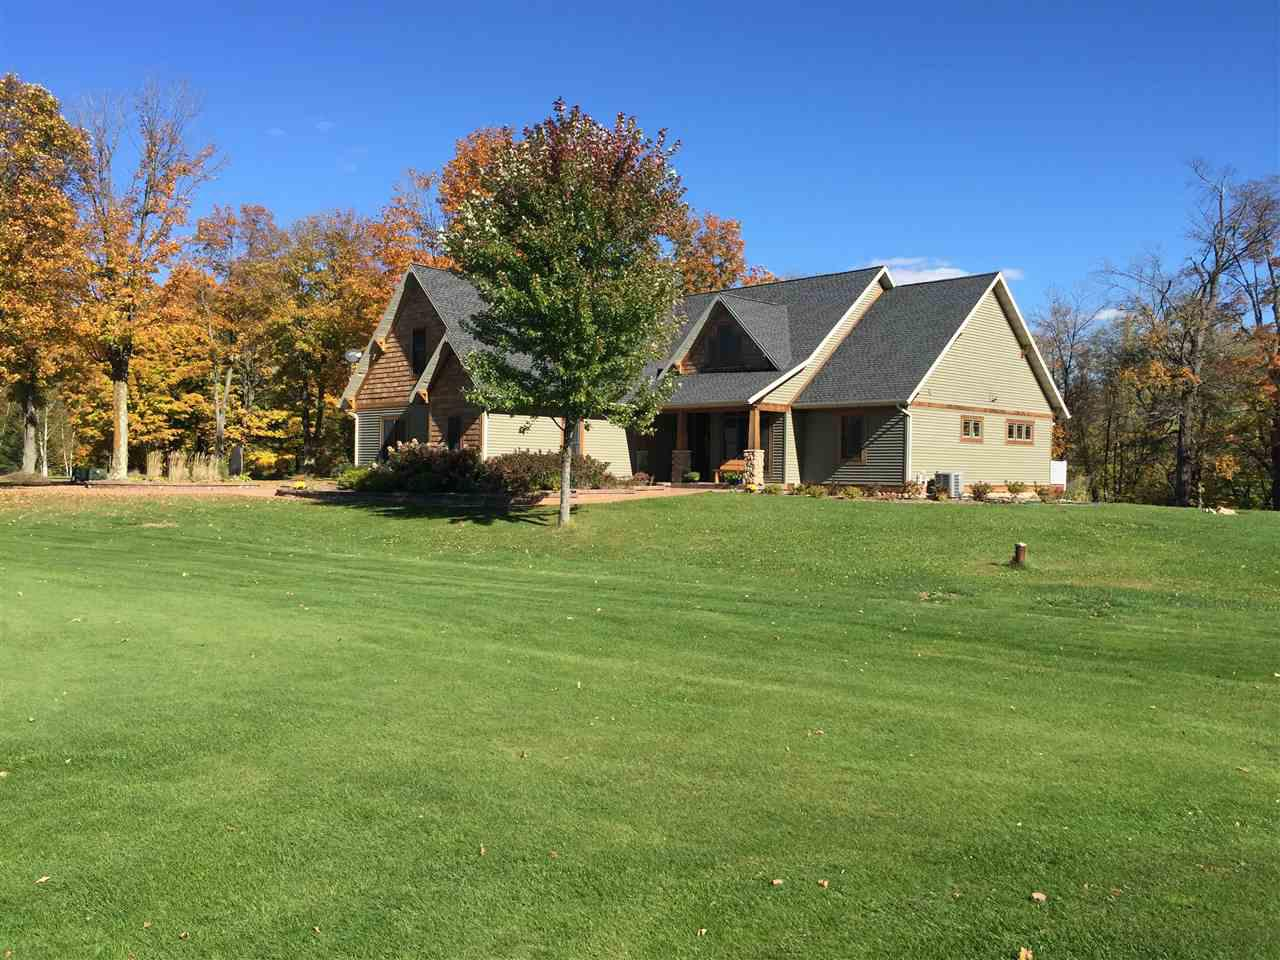 Quality built one owner Craftsmanship home with stunning views of the Eau Claire river and the River View golf course.  This prestige home has 200 ft of frontage on the Eau Claire river (where you can kayak for miles) and  is located on  hole 2  of the golf course. This 5 bedroom, 3.5 bath offer's seperate living quarters: upper level has nice size living room with beautiful stone gas fireplace. Dinette with panaramic views of the river. Kitchen has granite counter tops and snack bar.,Formal dining room off front entrance.  Master bedroom with patio doors to deck looking out to the Eau Claire river, private bath with double vanity, soaking tub and walk in tile shower.  Lower level boost open concept living room with additional gas fireplace and  large kitchen and dining area.  2 more bedrooms, Office/work out room, laundry room and full bathroom. Walk out lower level with nice size patio for entertaining.  All kitchen appliances included.  Must see the beautiful professional landscaped yard!!